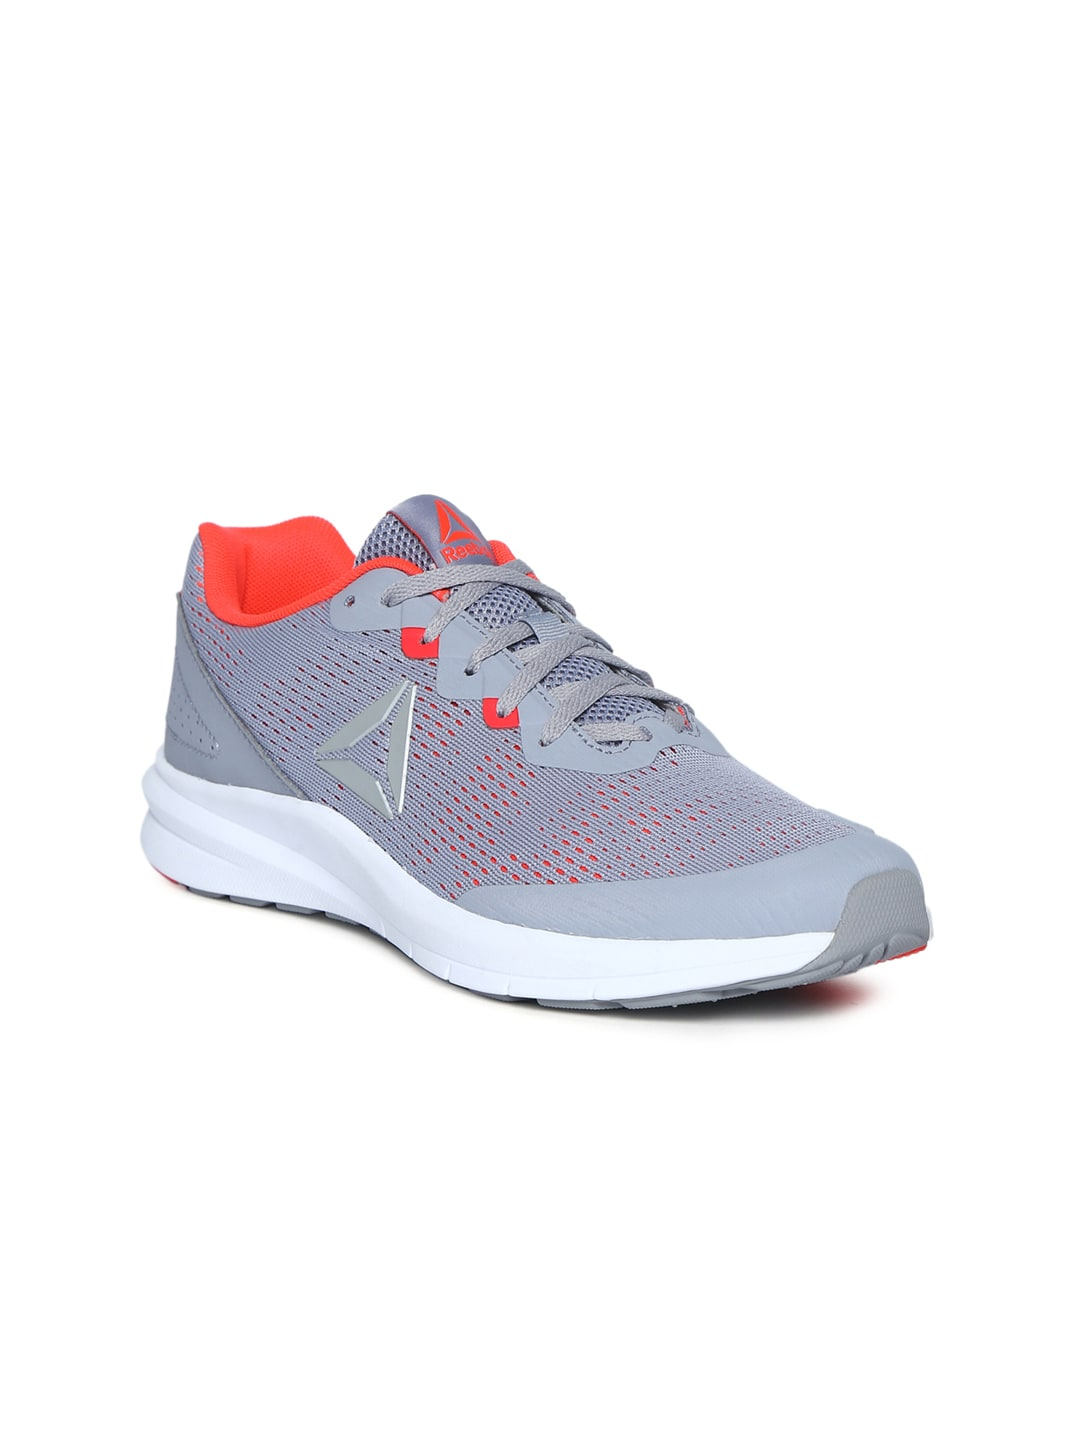 7ab6c40cd78 Nice Shoe Sports Shoes - Buy Nice Shoe Sports Shoes online in India